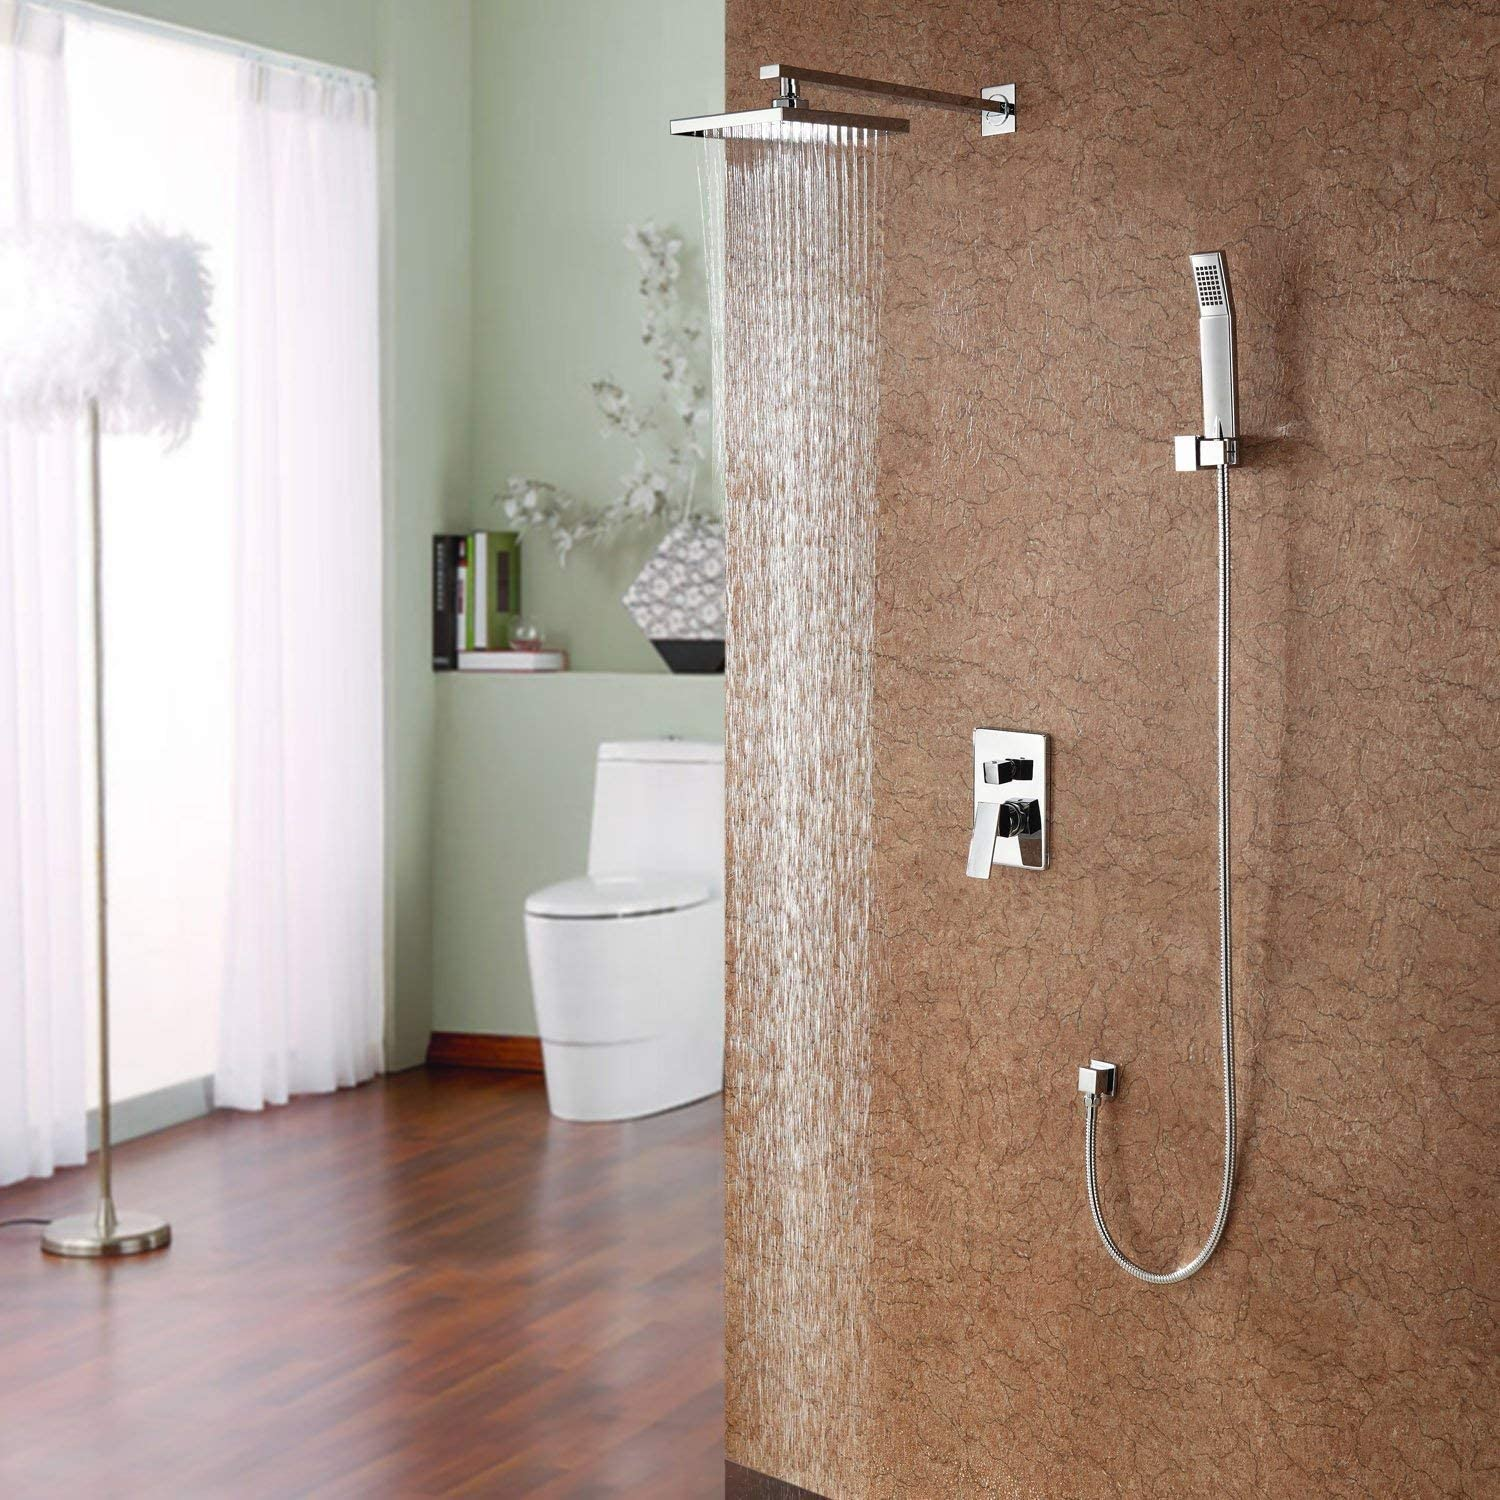 Zxy-Split Install Shower Shower Shower of Light of The Game of colors in The Wall Shower Flower of Copper